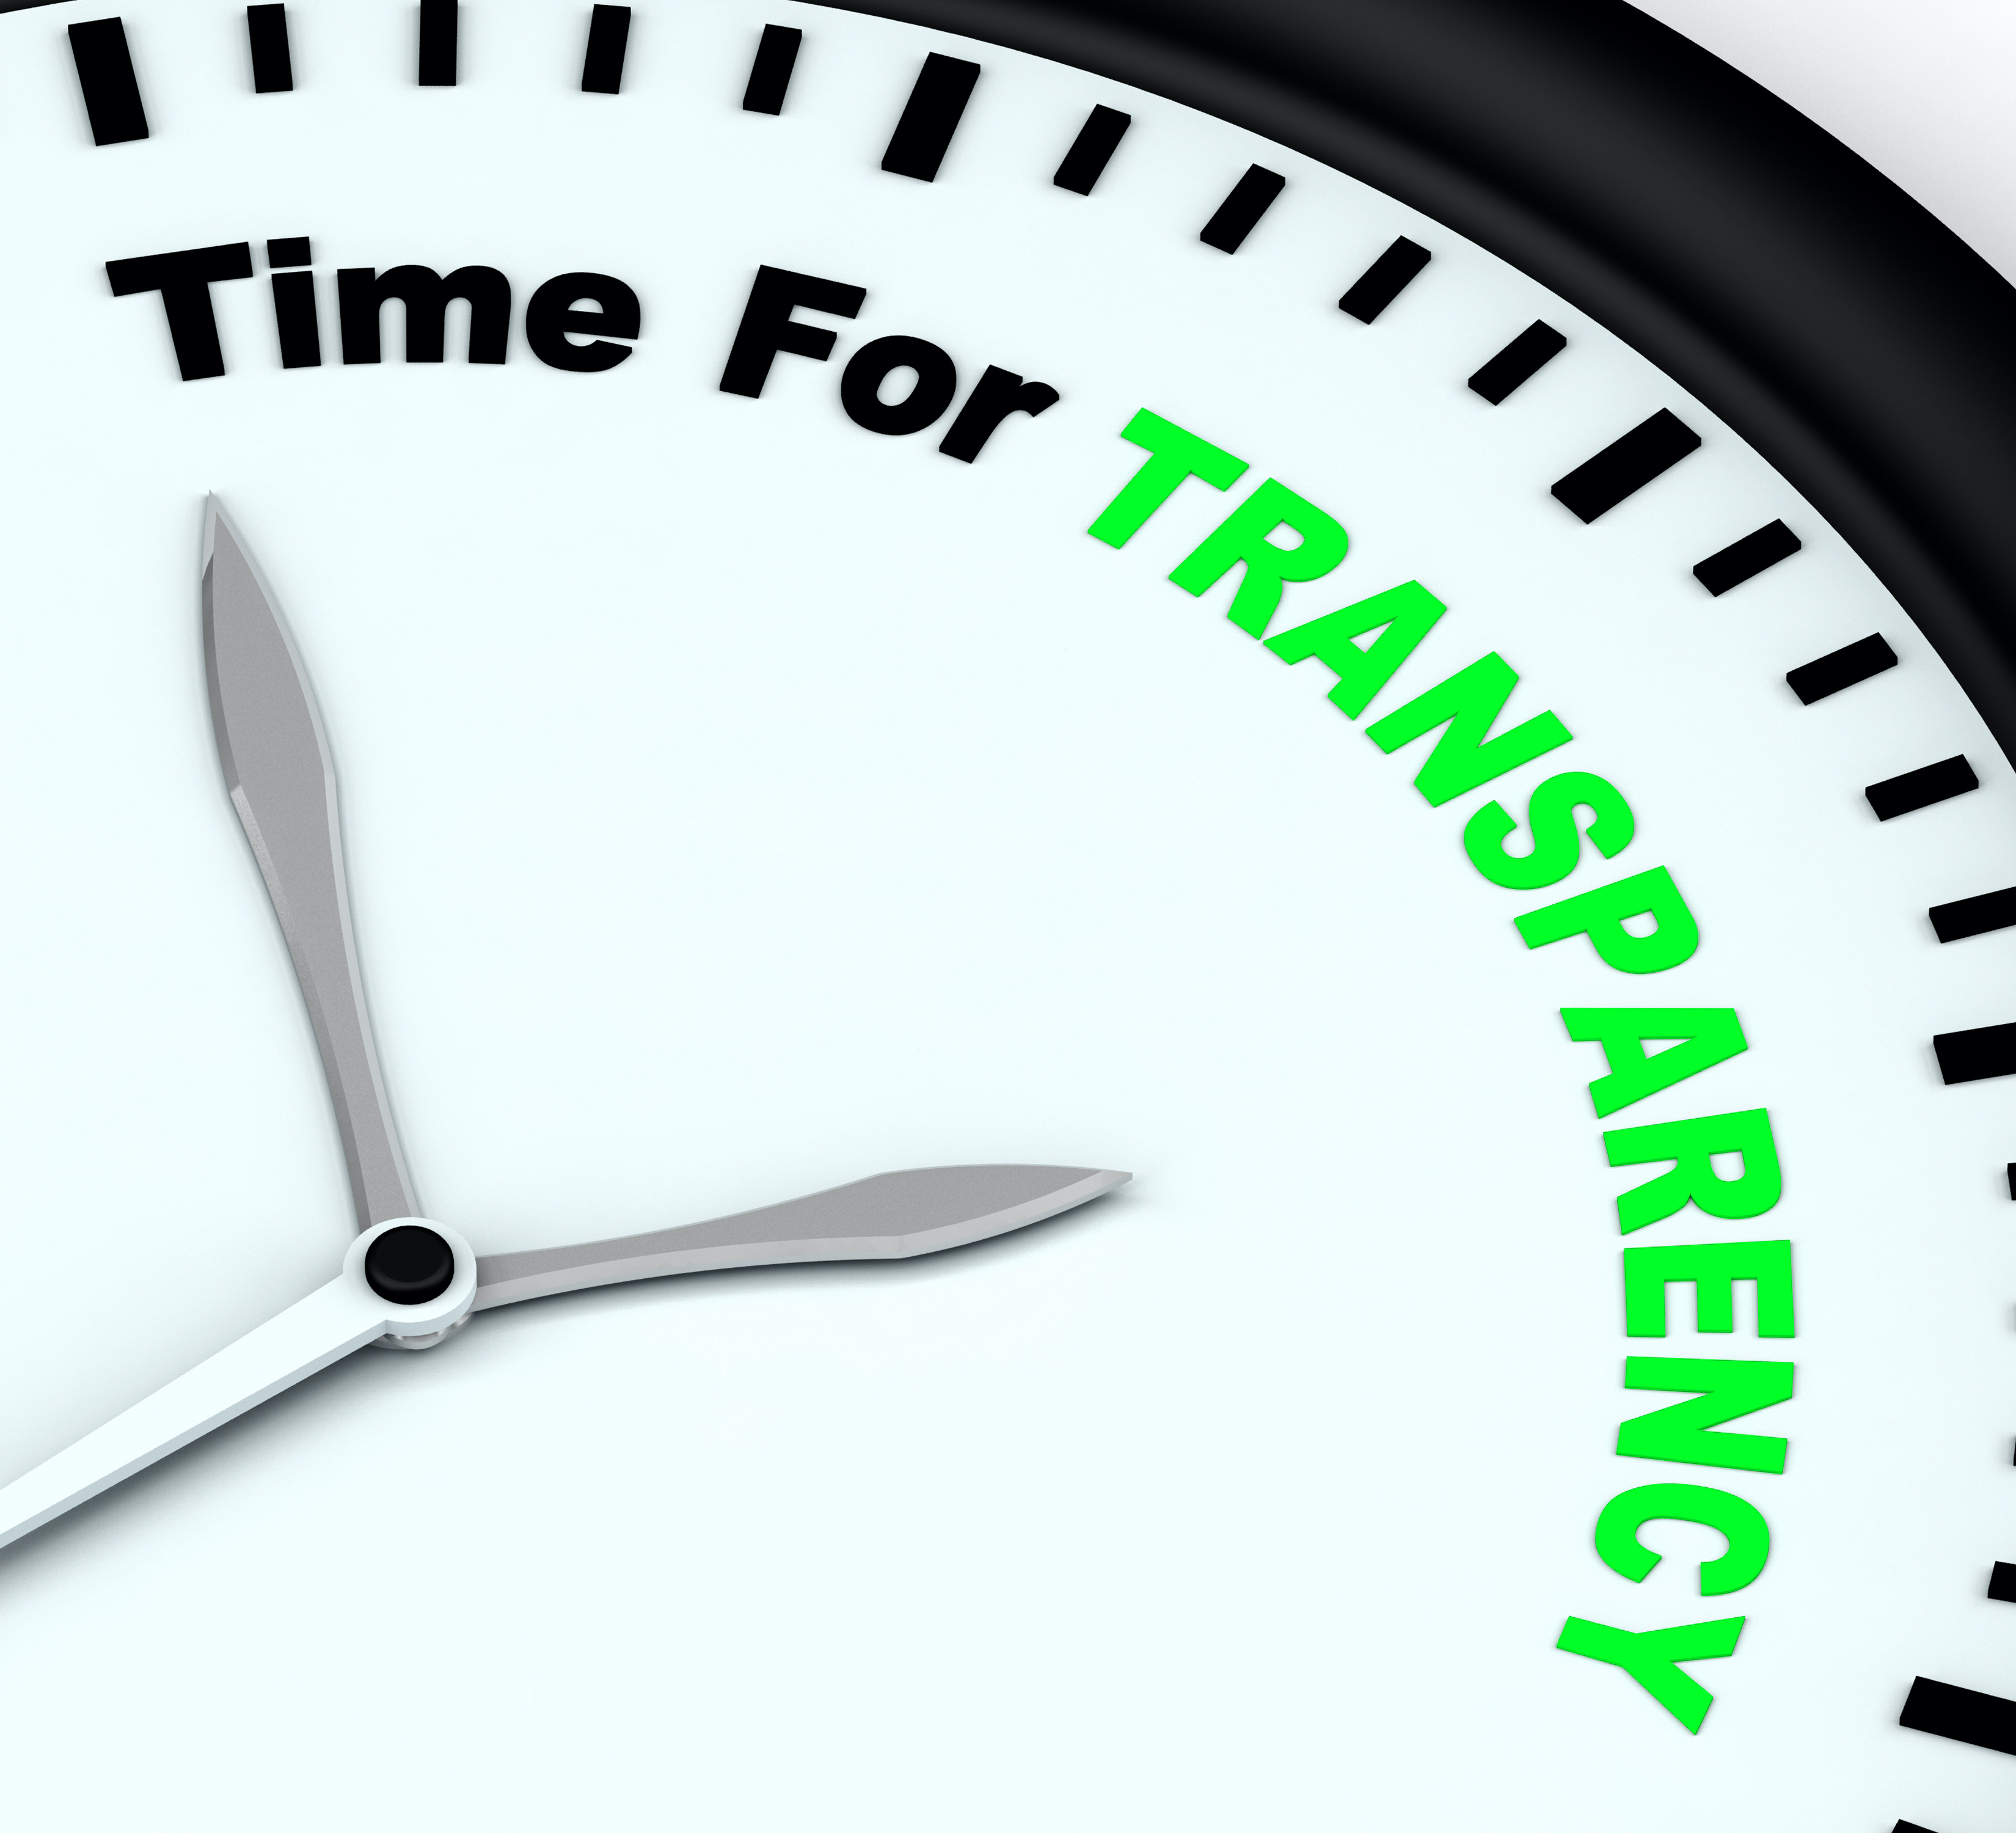 Time For Transparency Message Showing Ethics And Fairness